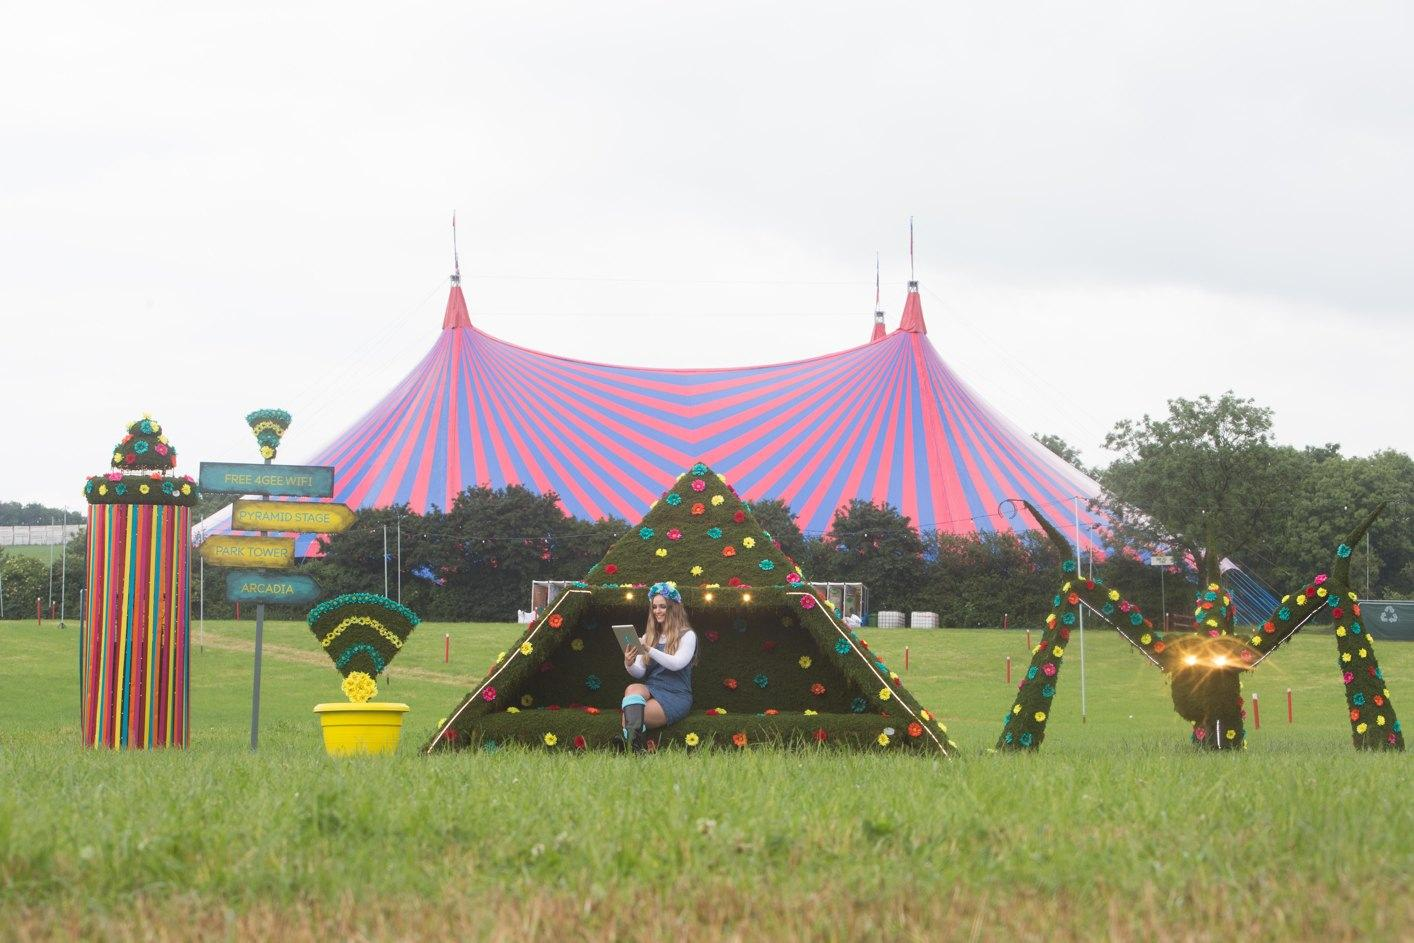 The structures take the form of mini versions of some of Glastonbury's most famous landmarks, like the Pyramid Stage, the Arcadia spider and the Park Tower